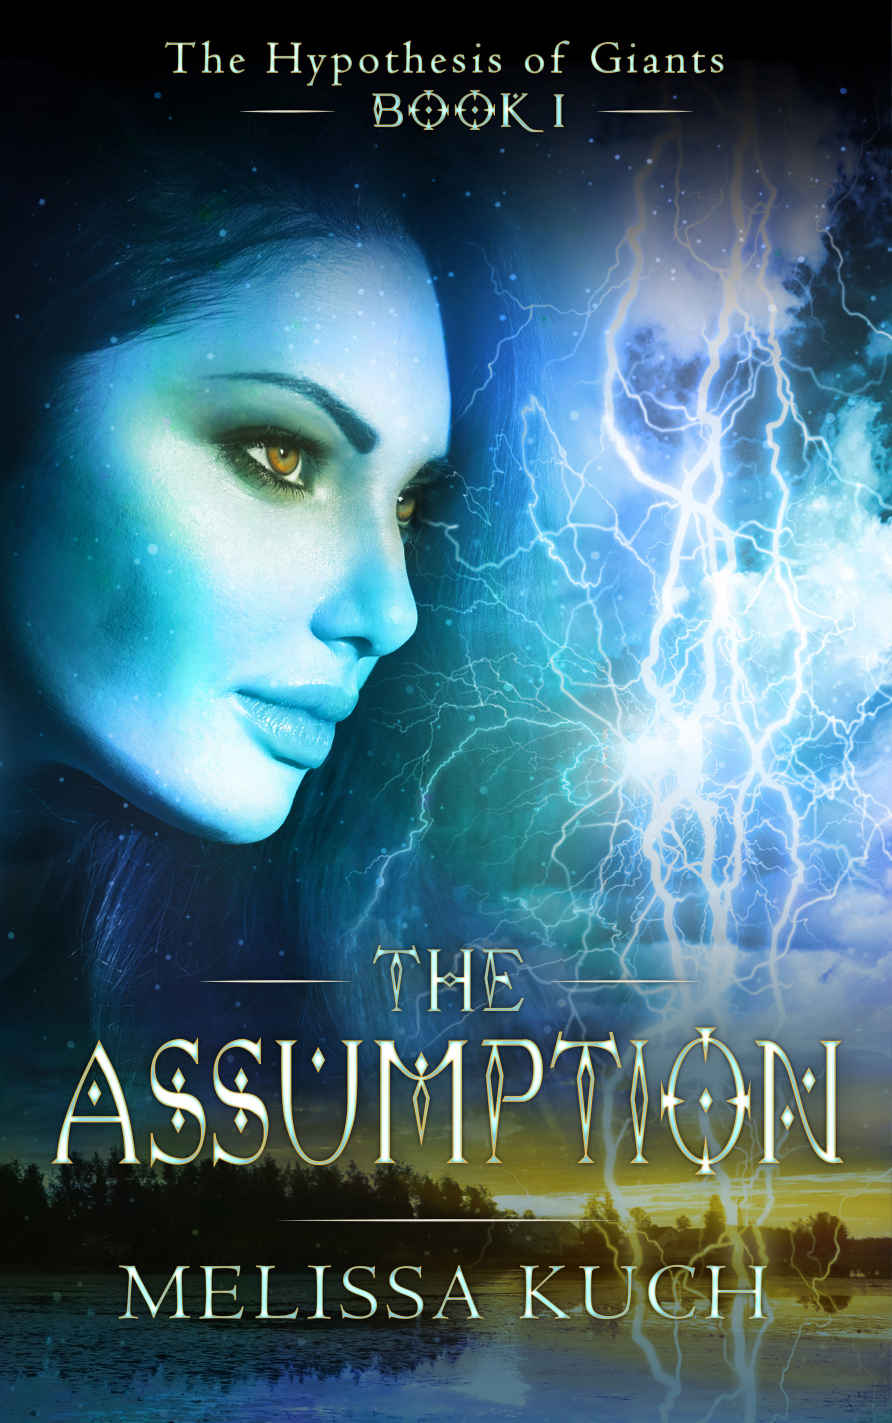 The Hypothesis of Giants- Book One: The Assumption by Melissa Kuch